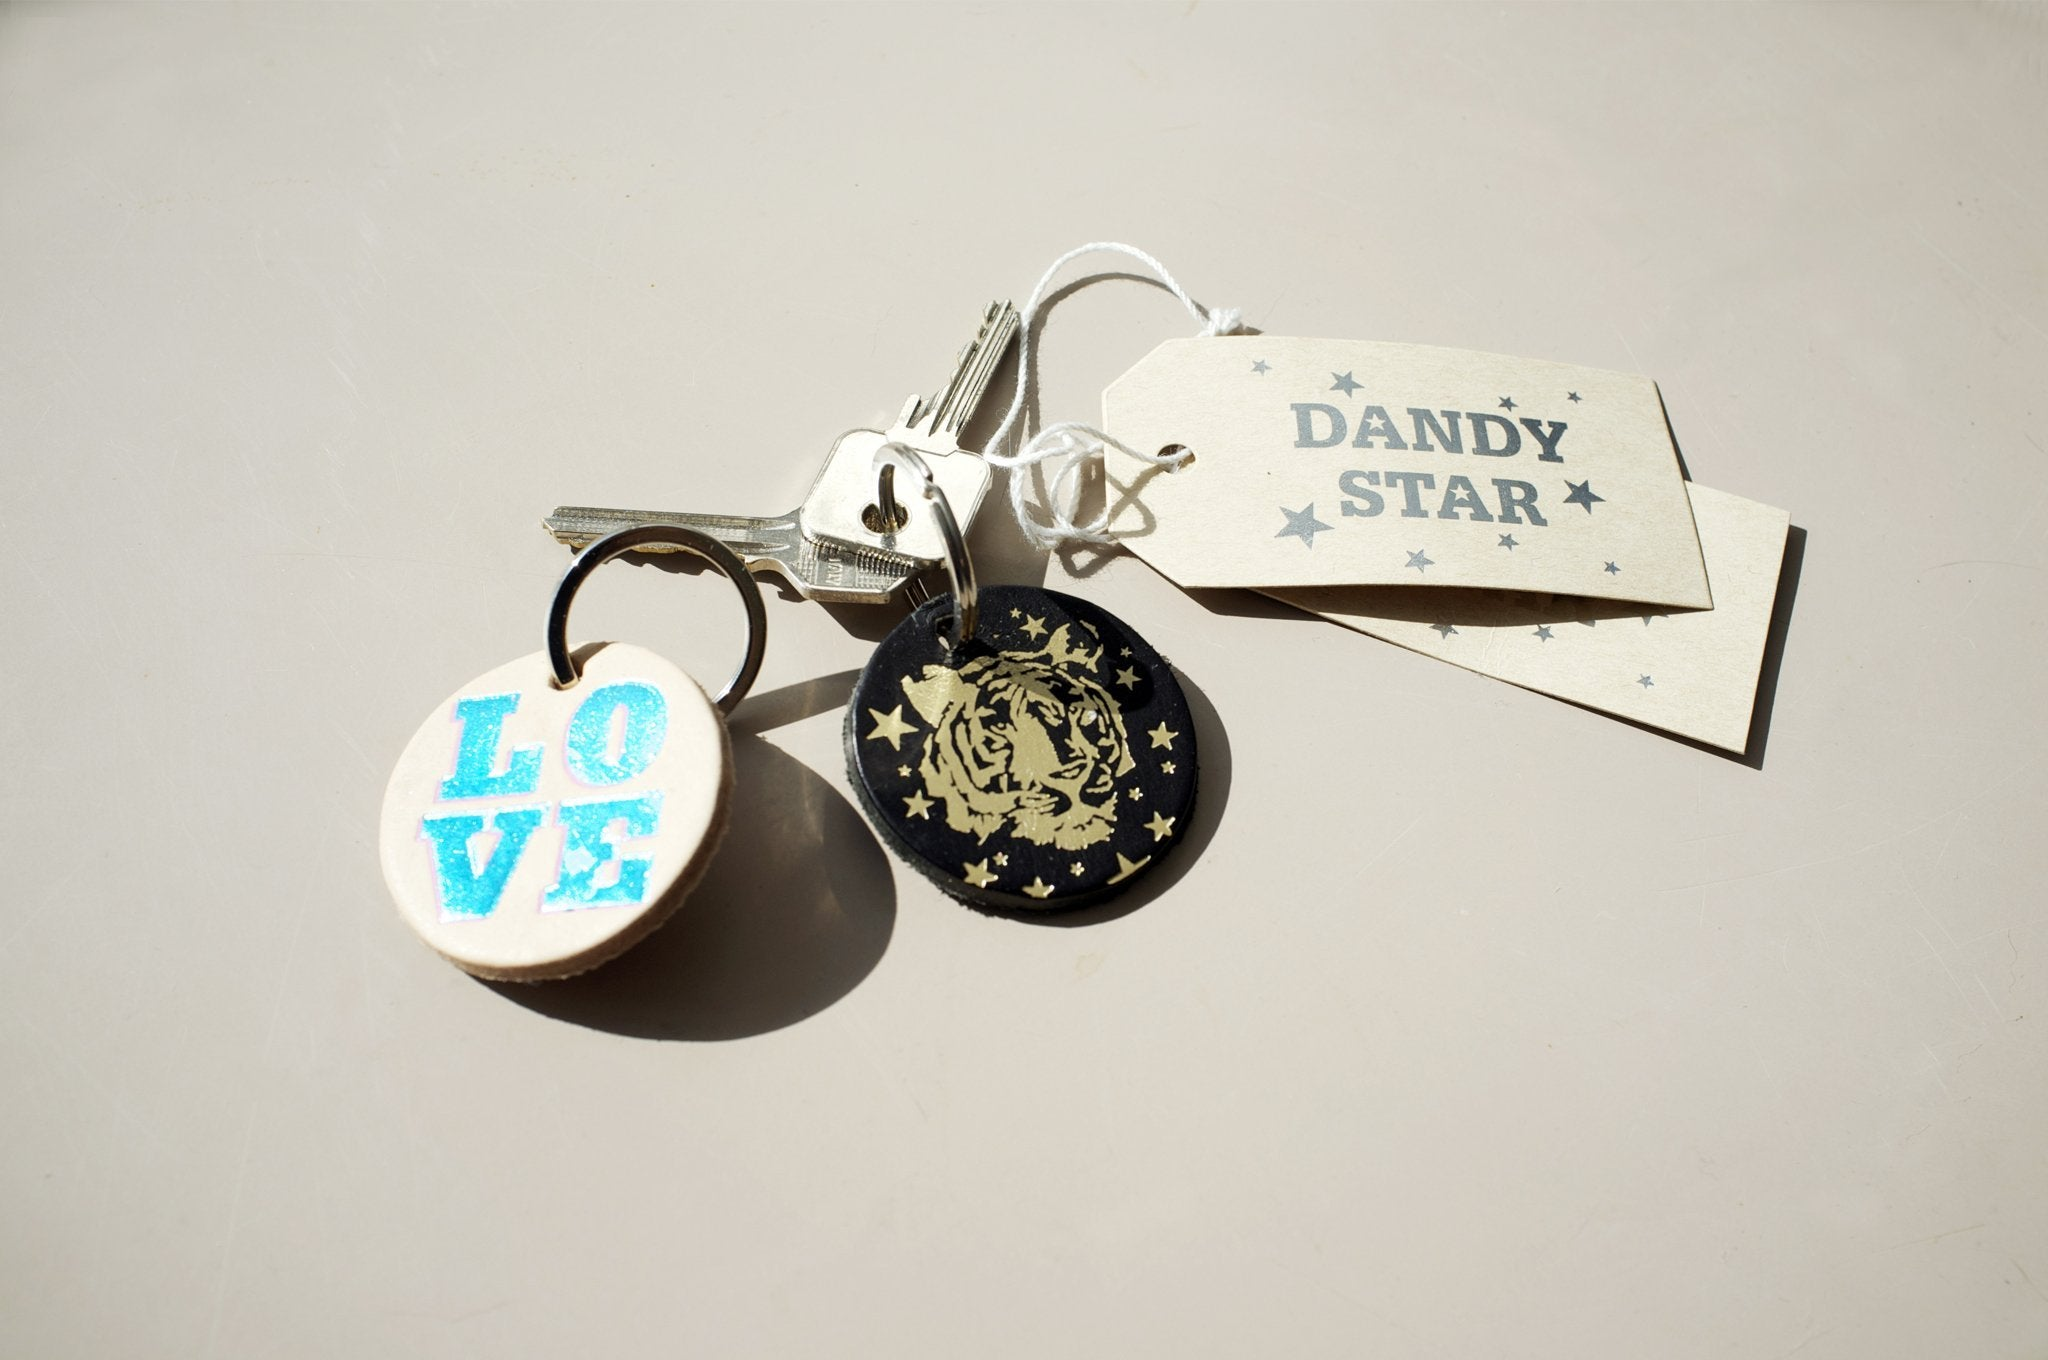 DANDY STAR LOVE KEY RING